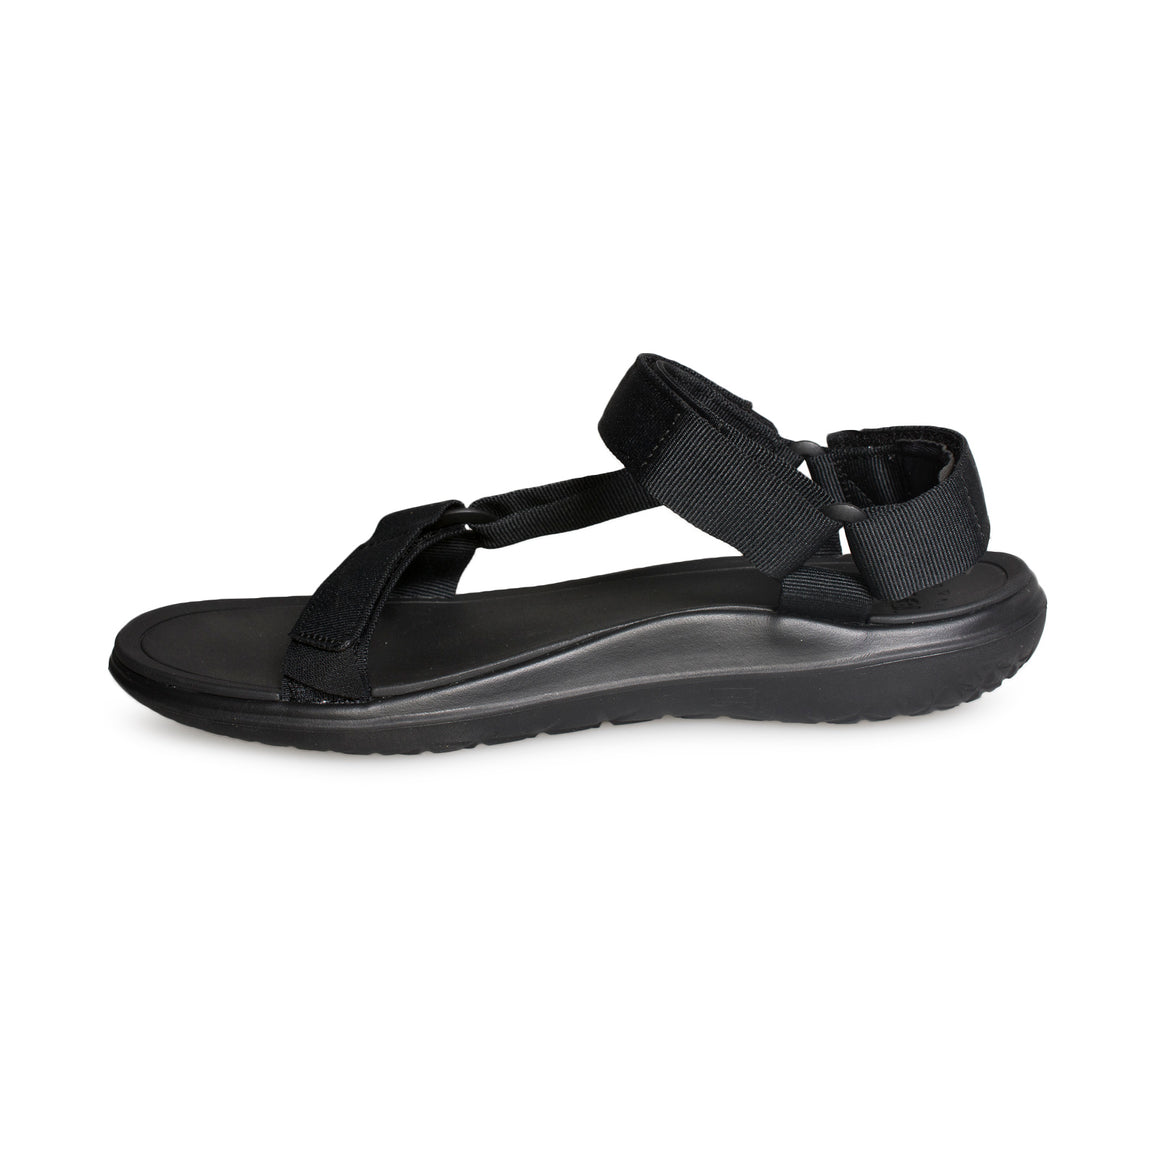 TEVA Terra Float Universal Lite Black Sandals - Men's